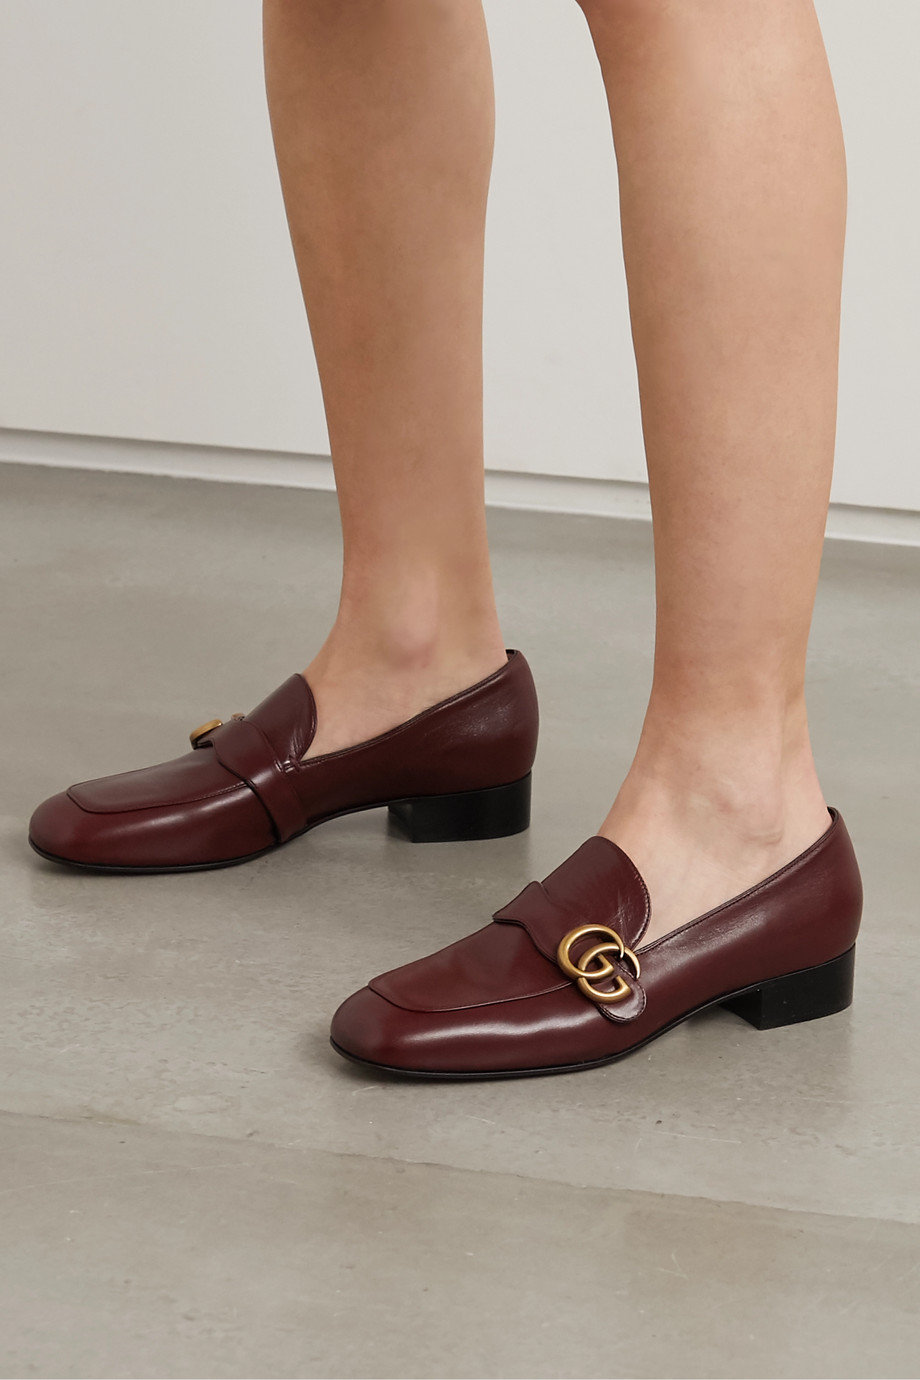 GUCCI Marmont logo-embellished leather loafers